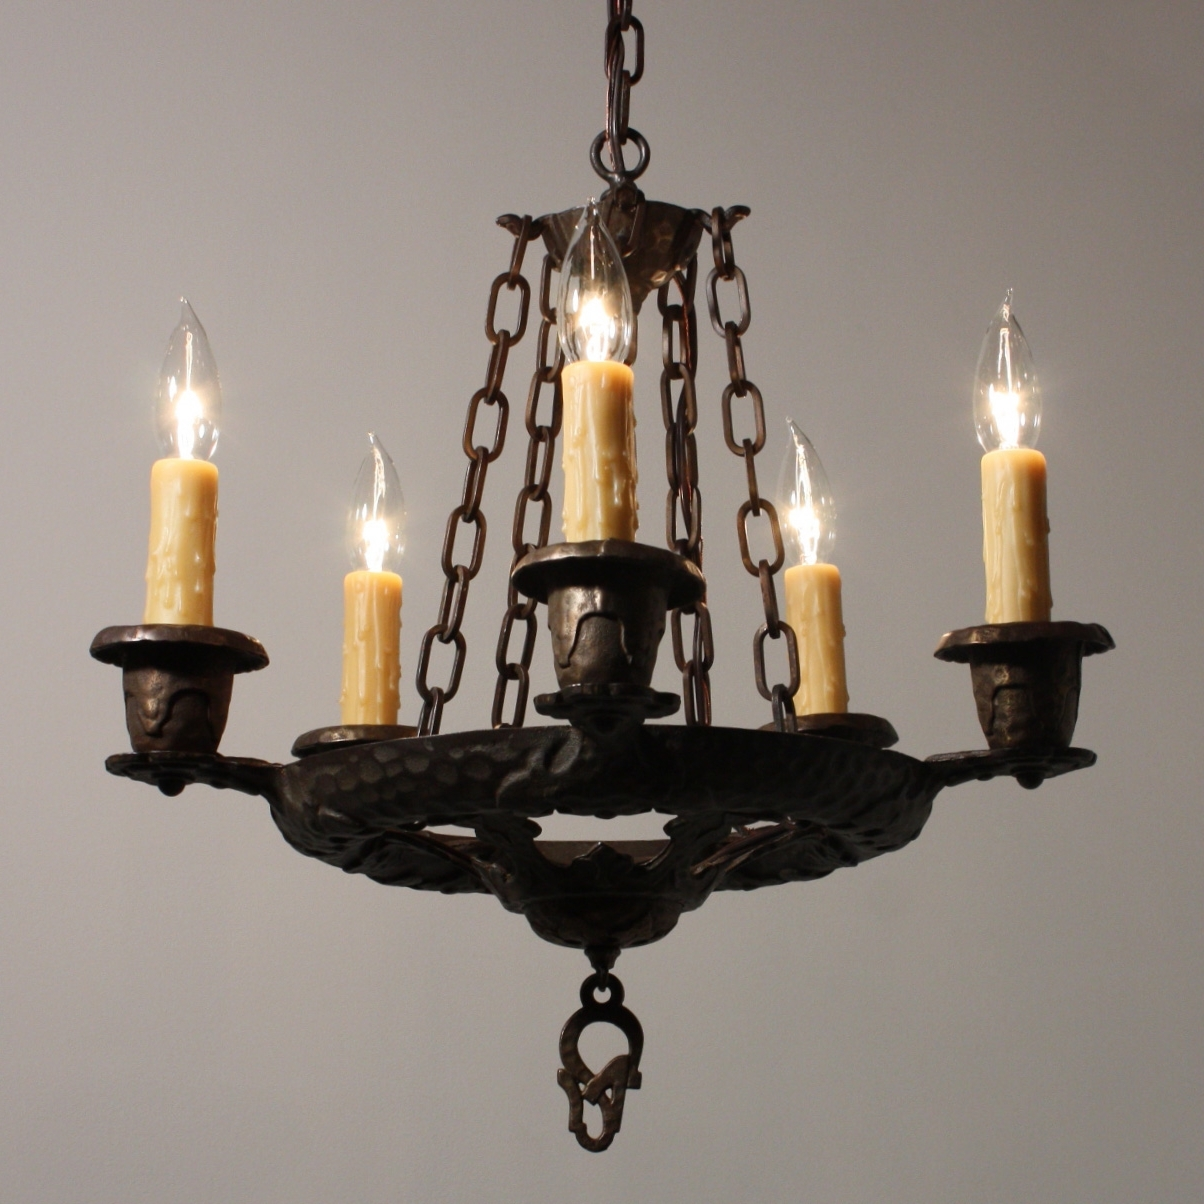 Cast Iron Antique Chandelier Throughout 2018 Handsome Antique Five Light Tudor Chandelier, Cast Iron, Nc1650 Rw (View 5 of 15)